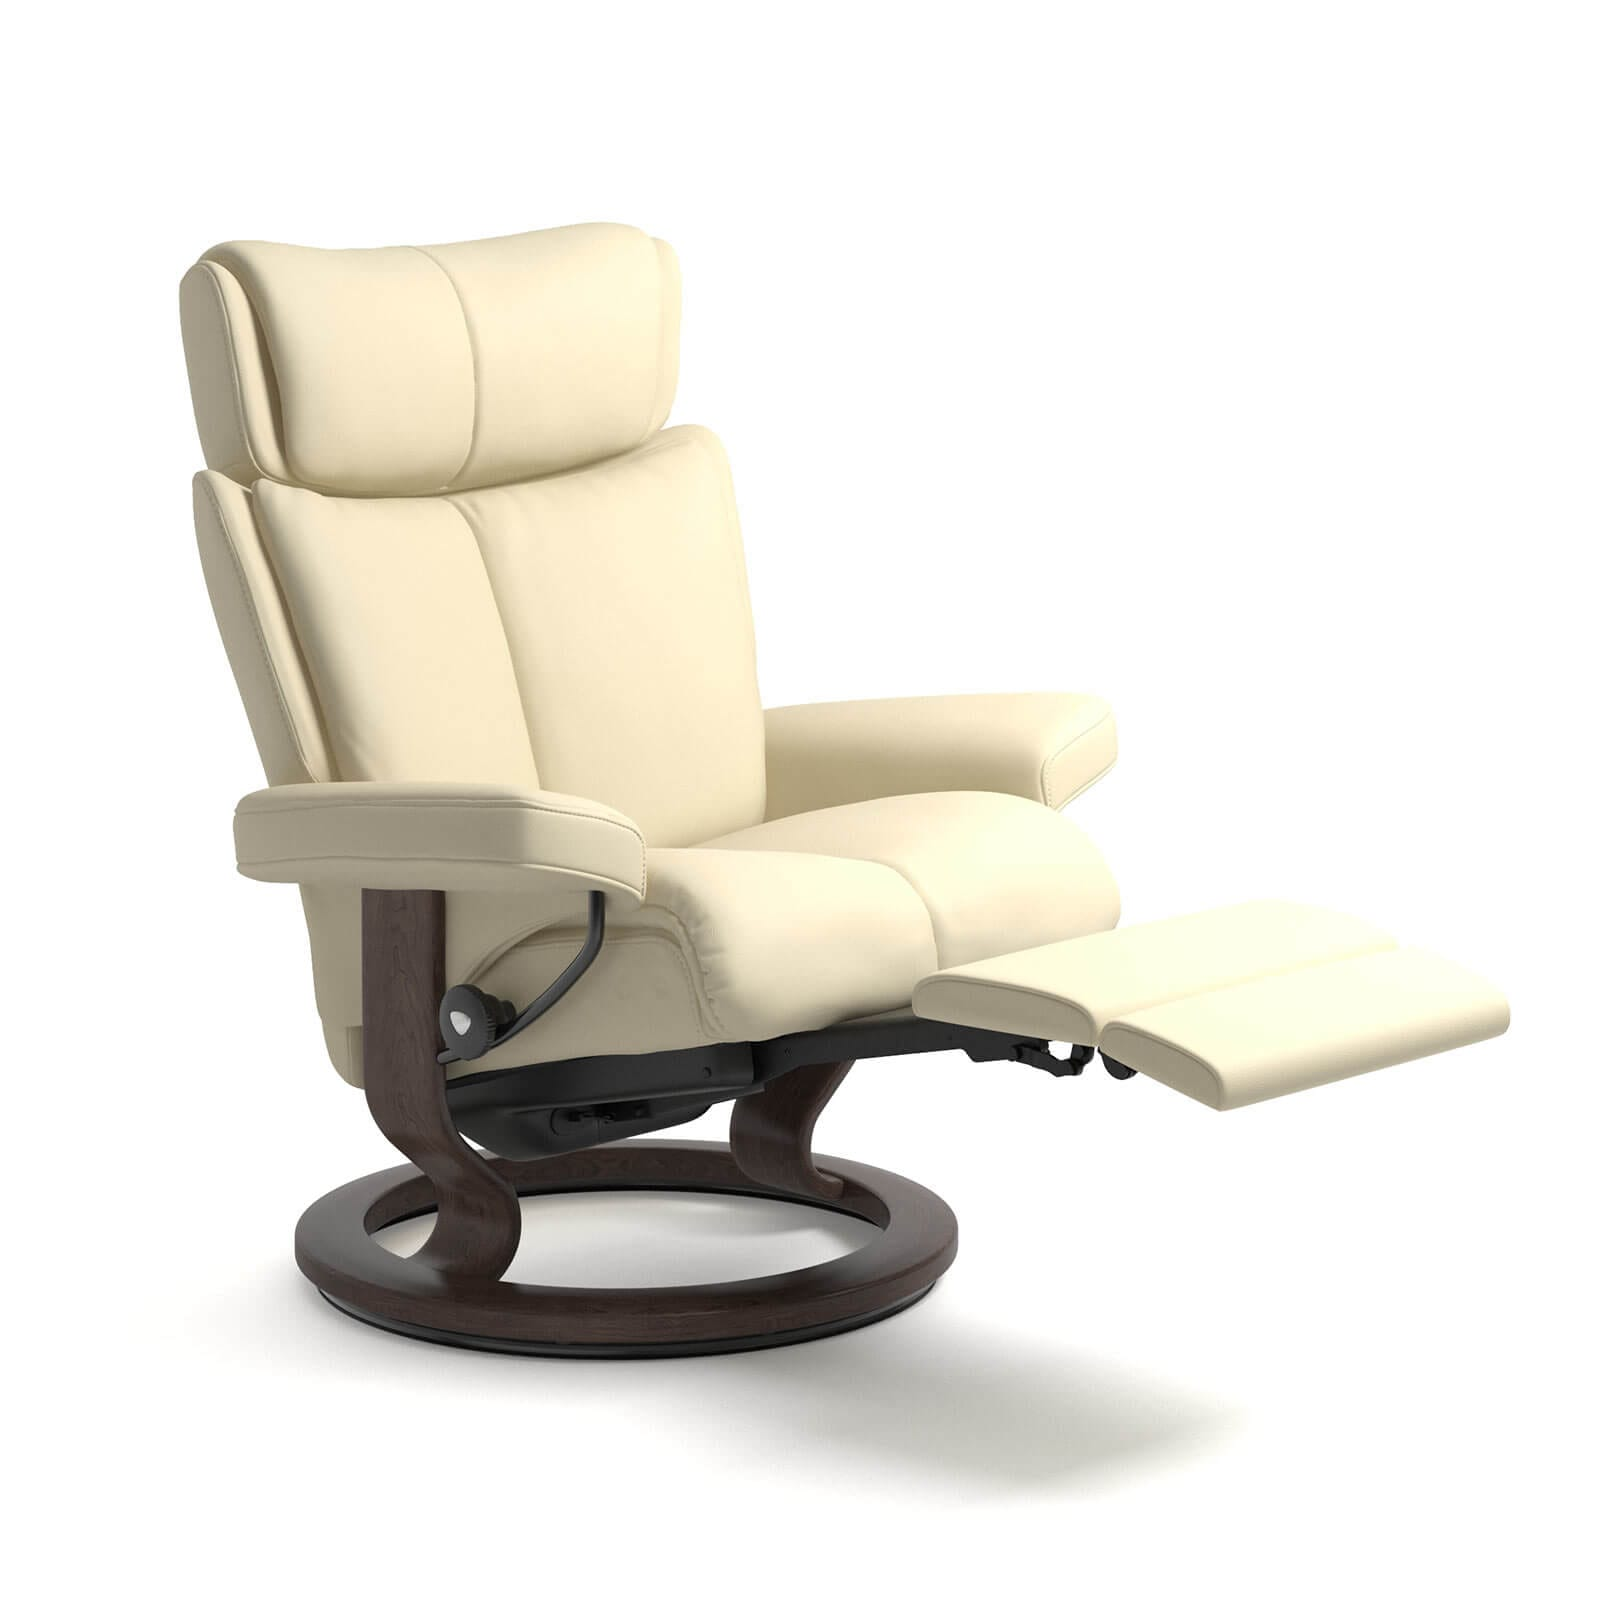 Stressless City Sessel Preis Stressless Sessel Magic Legcomfort Leder Paloma Vanilla Gestell Wenge